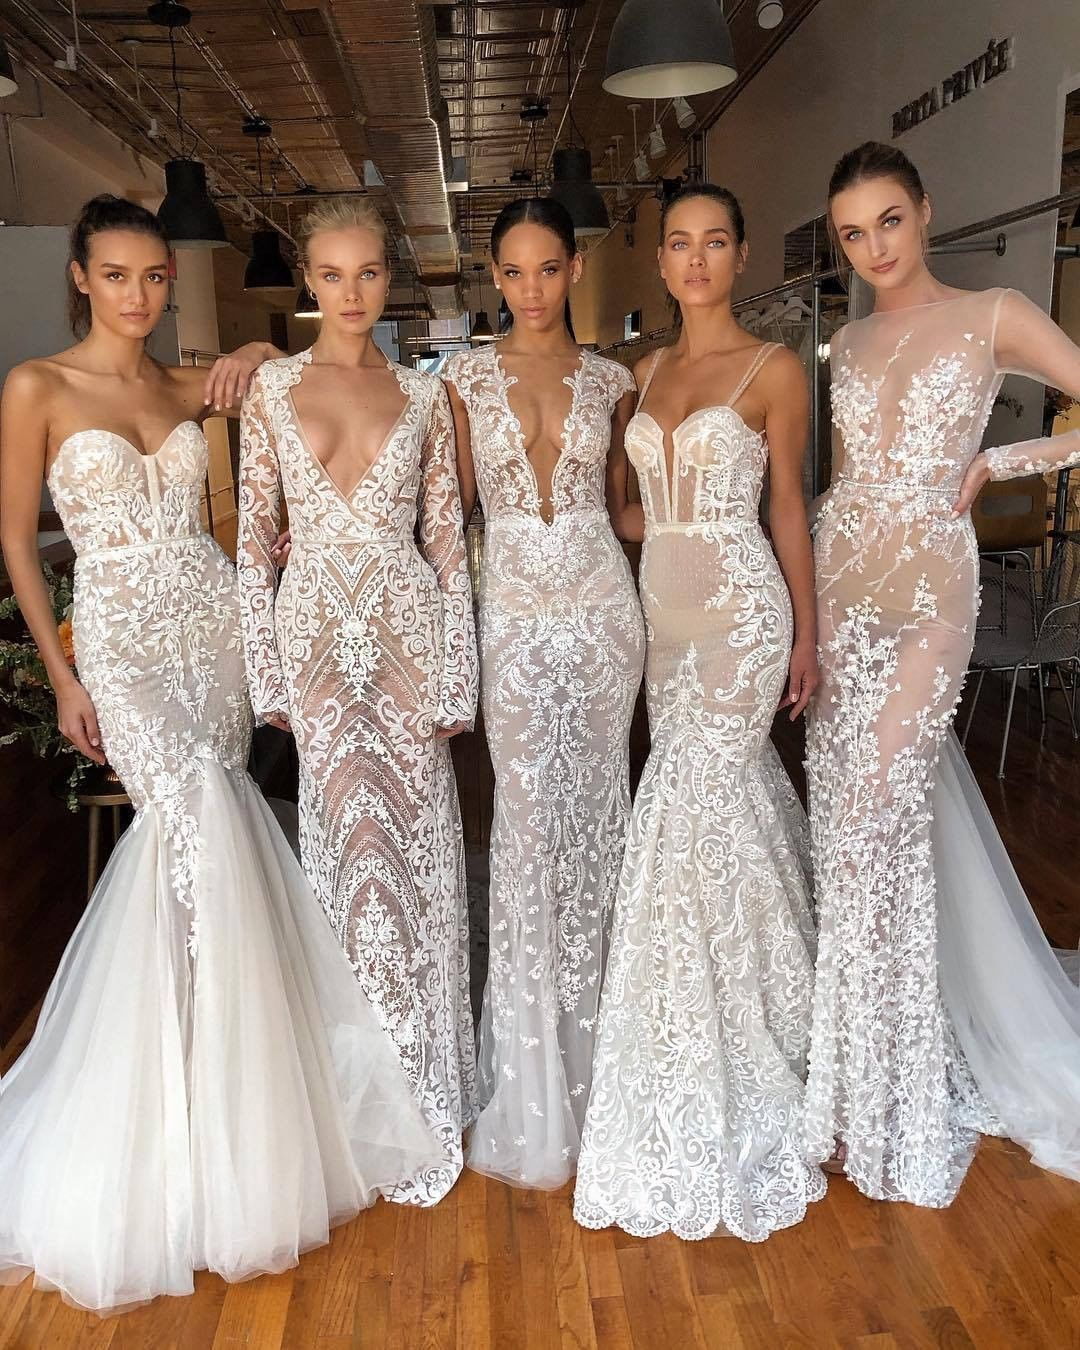 "Wedding Dresses Gallery on Instagram: ""Gorgeous dresses ⁠✨ Which one would you wear?⁠ ⁠ ⁠ Dresses by @berta ⁠ ⁠ #dress #weddingdress #bride #weddingparty #wedding #weddingdresses…"" #bertaweddingdress"